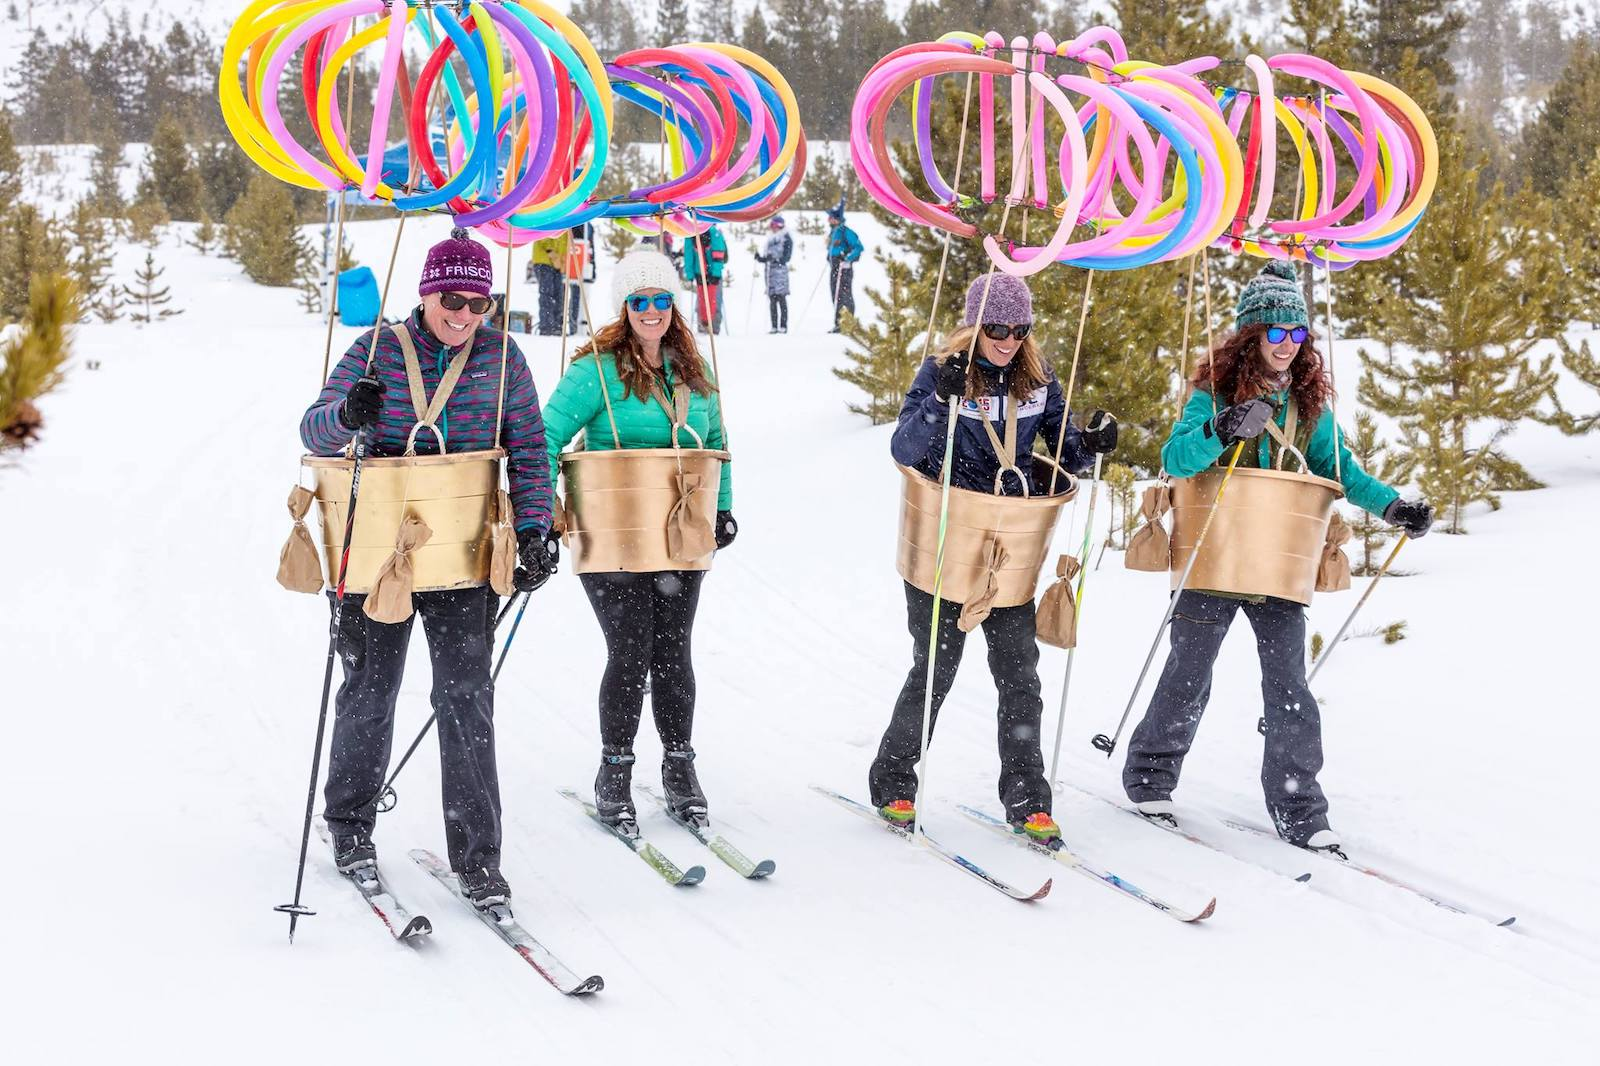 Image of people in costumes for Brewski in Frisco, Colorado